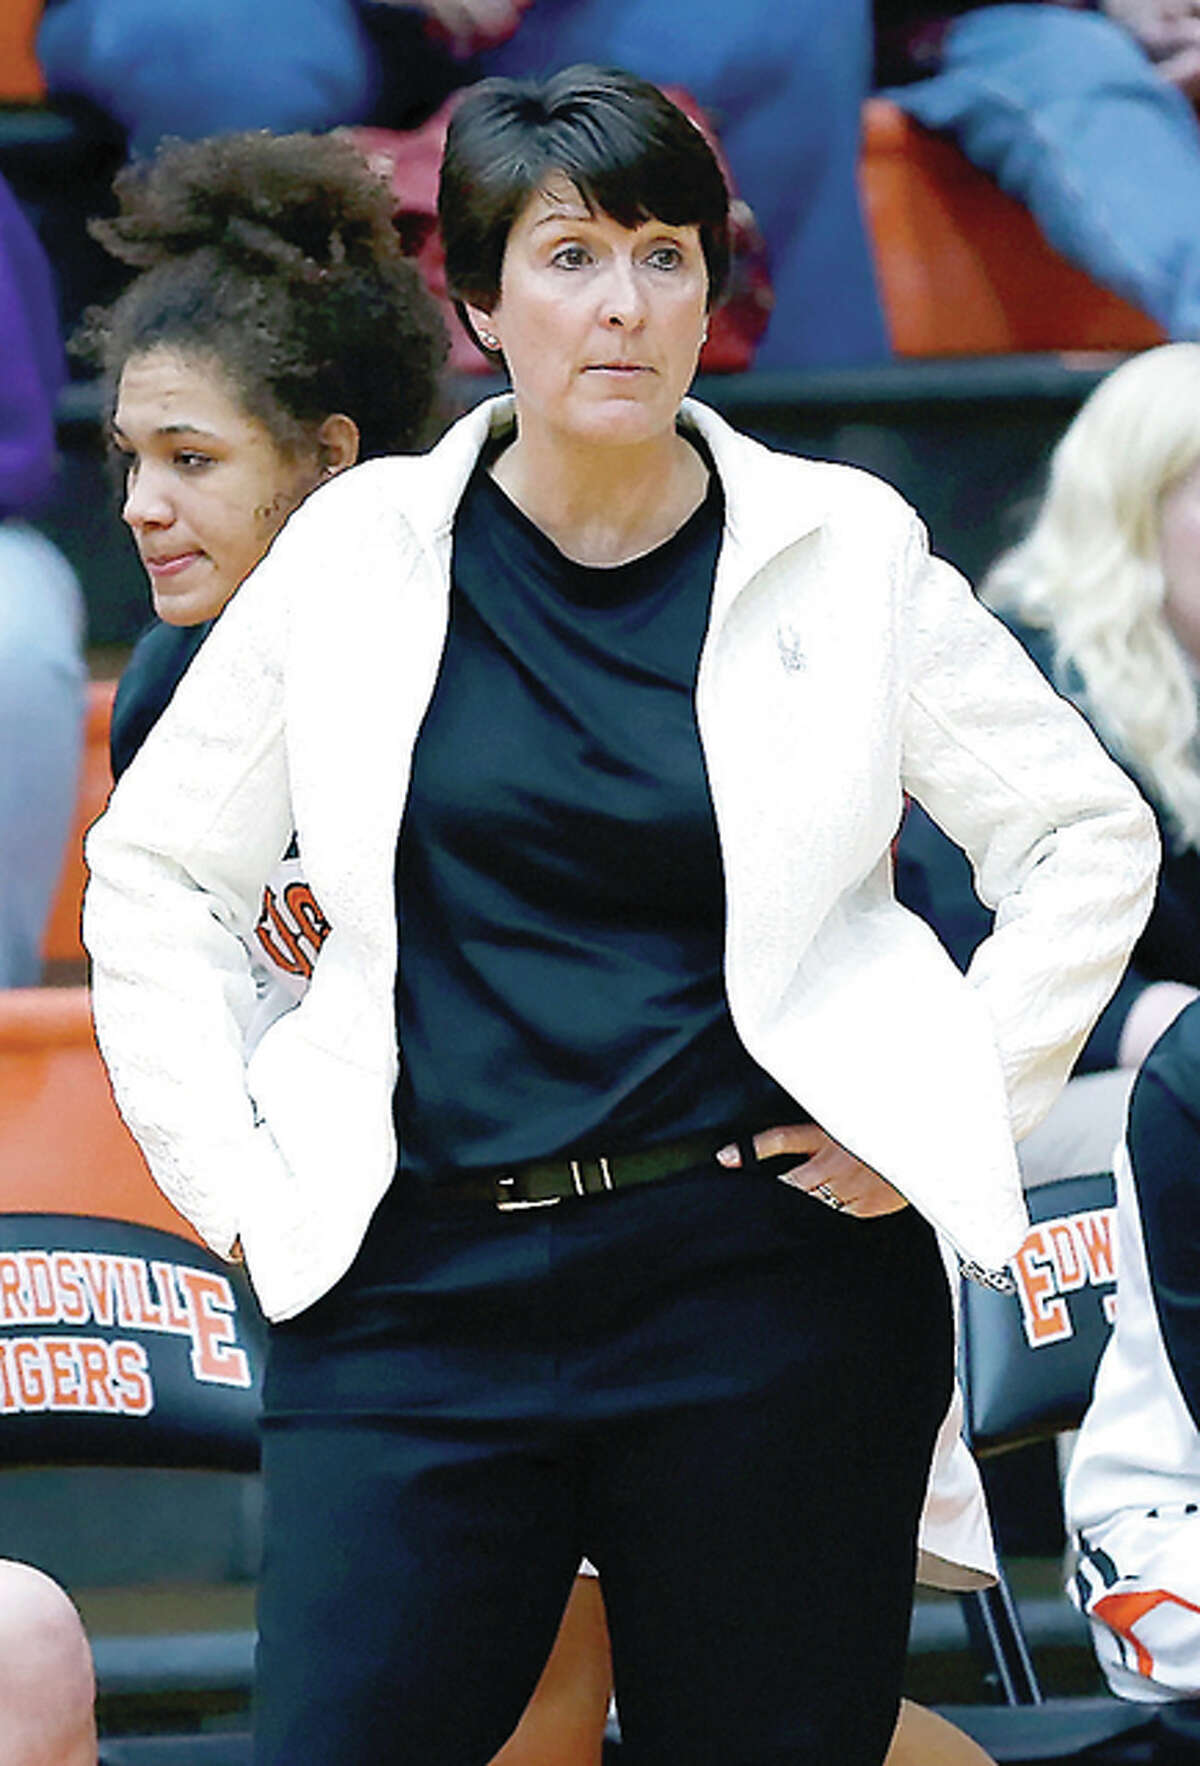 Edwardsville girls basketball coach Lori Blade's team defeated O'Fallon 67-34 Tuesday night at home and captured their ninth consecutive southwestern conference title in the process. The Tigers are 24-0.